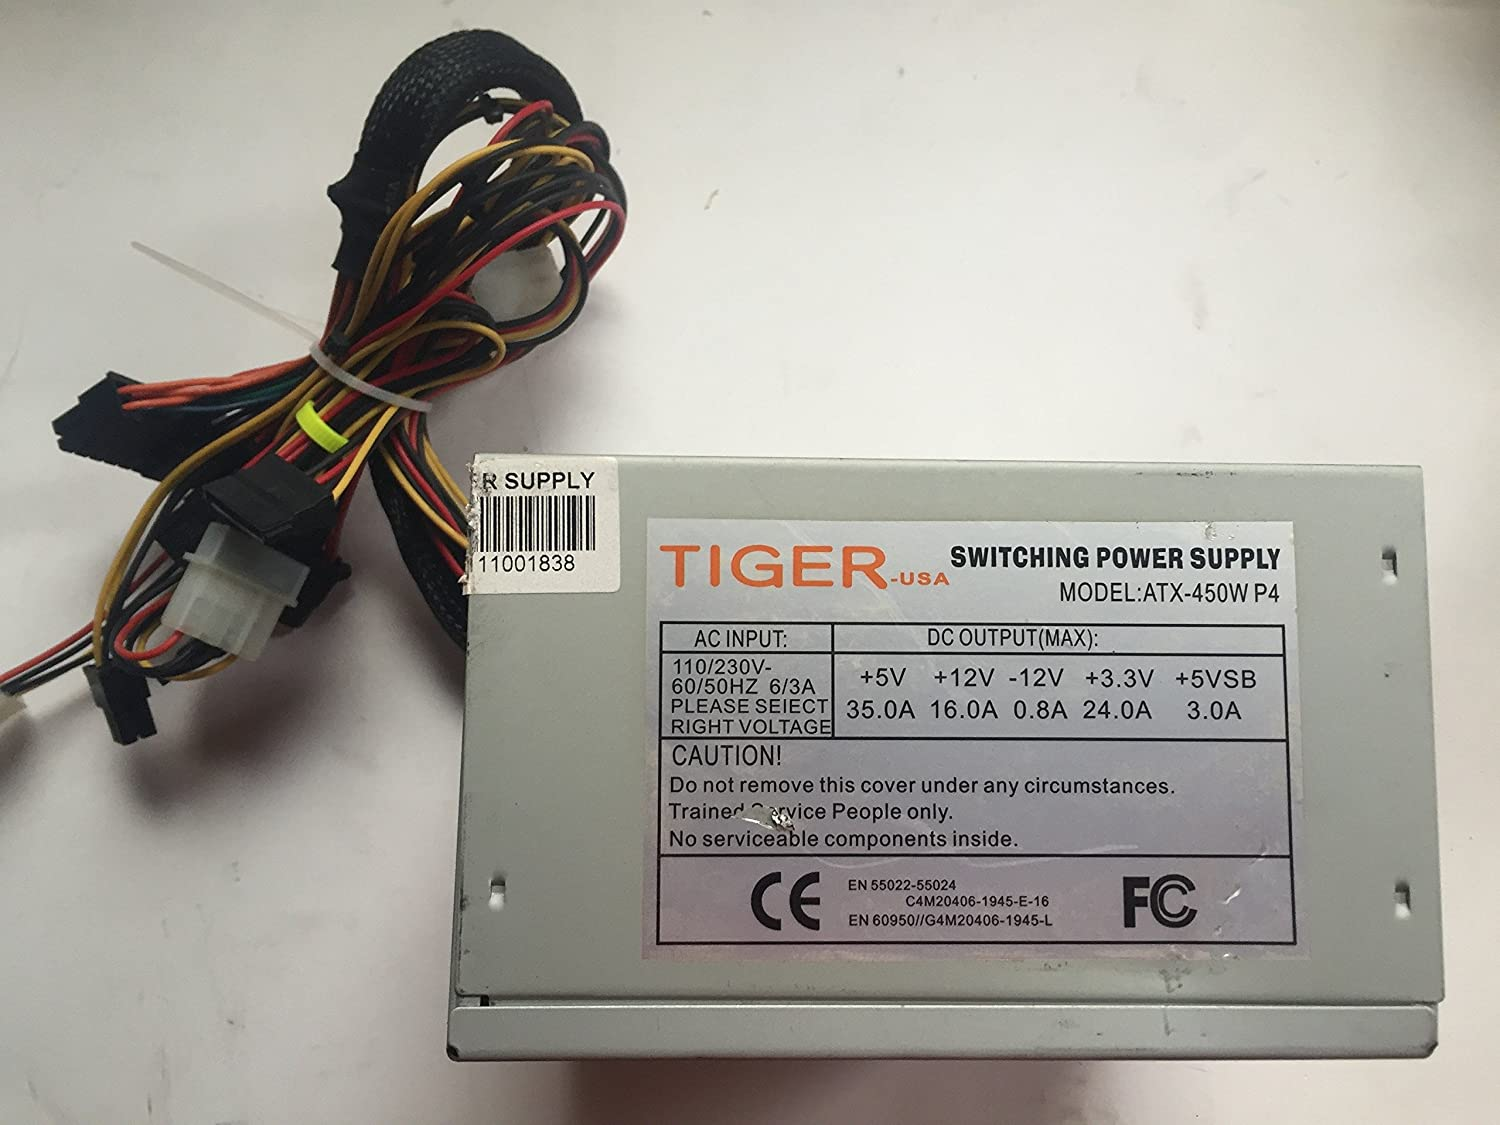 Awesome Atx 450w Power Supply Image Collection - Electrical and ...